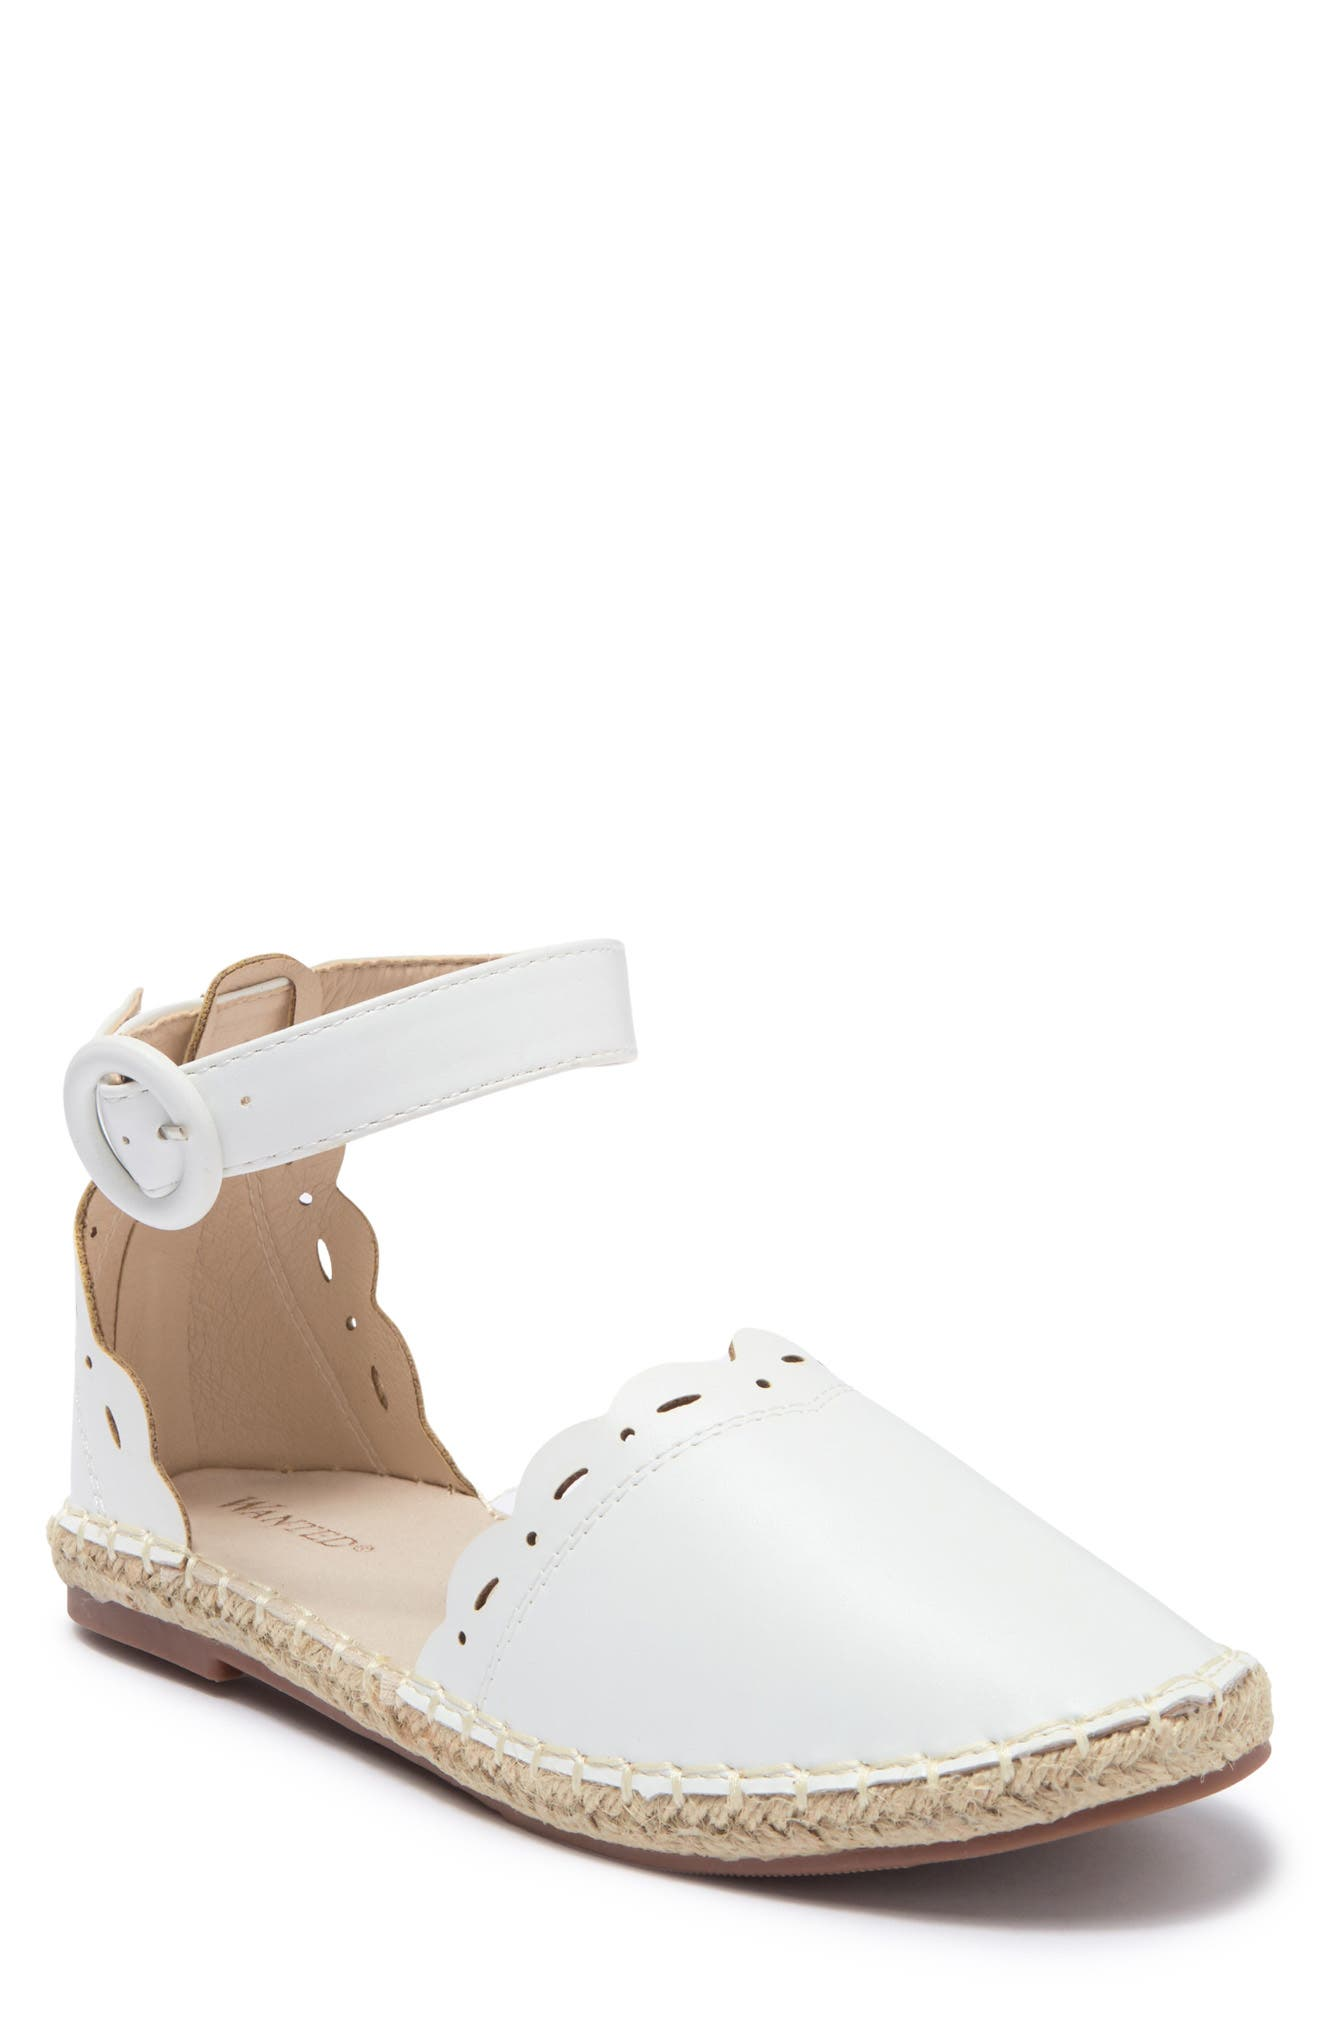 Image of Wanted Scallop Trim Espdarille Sandal